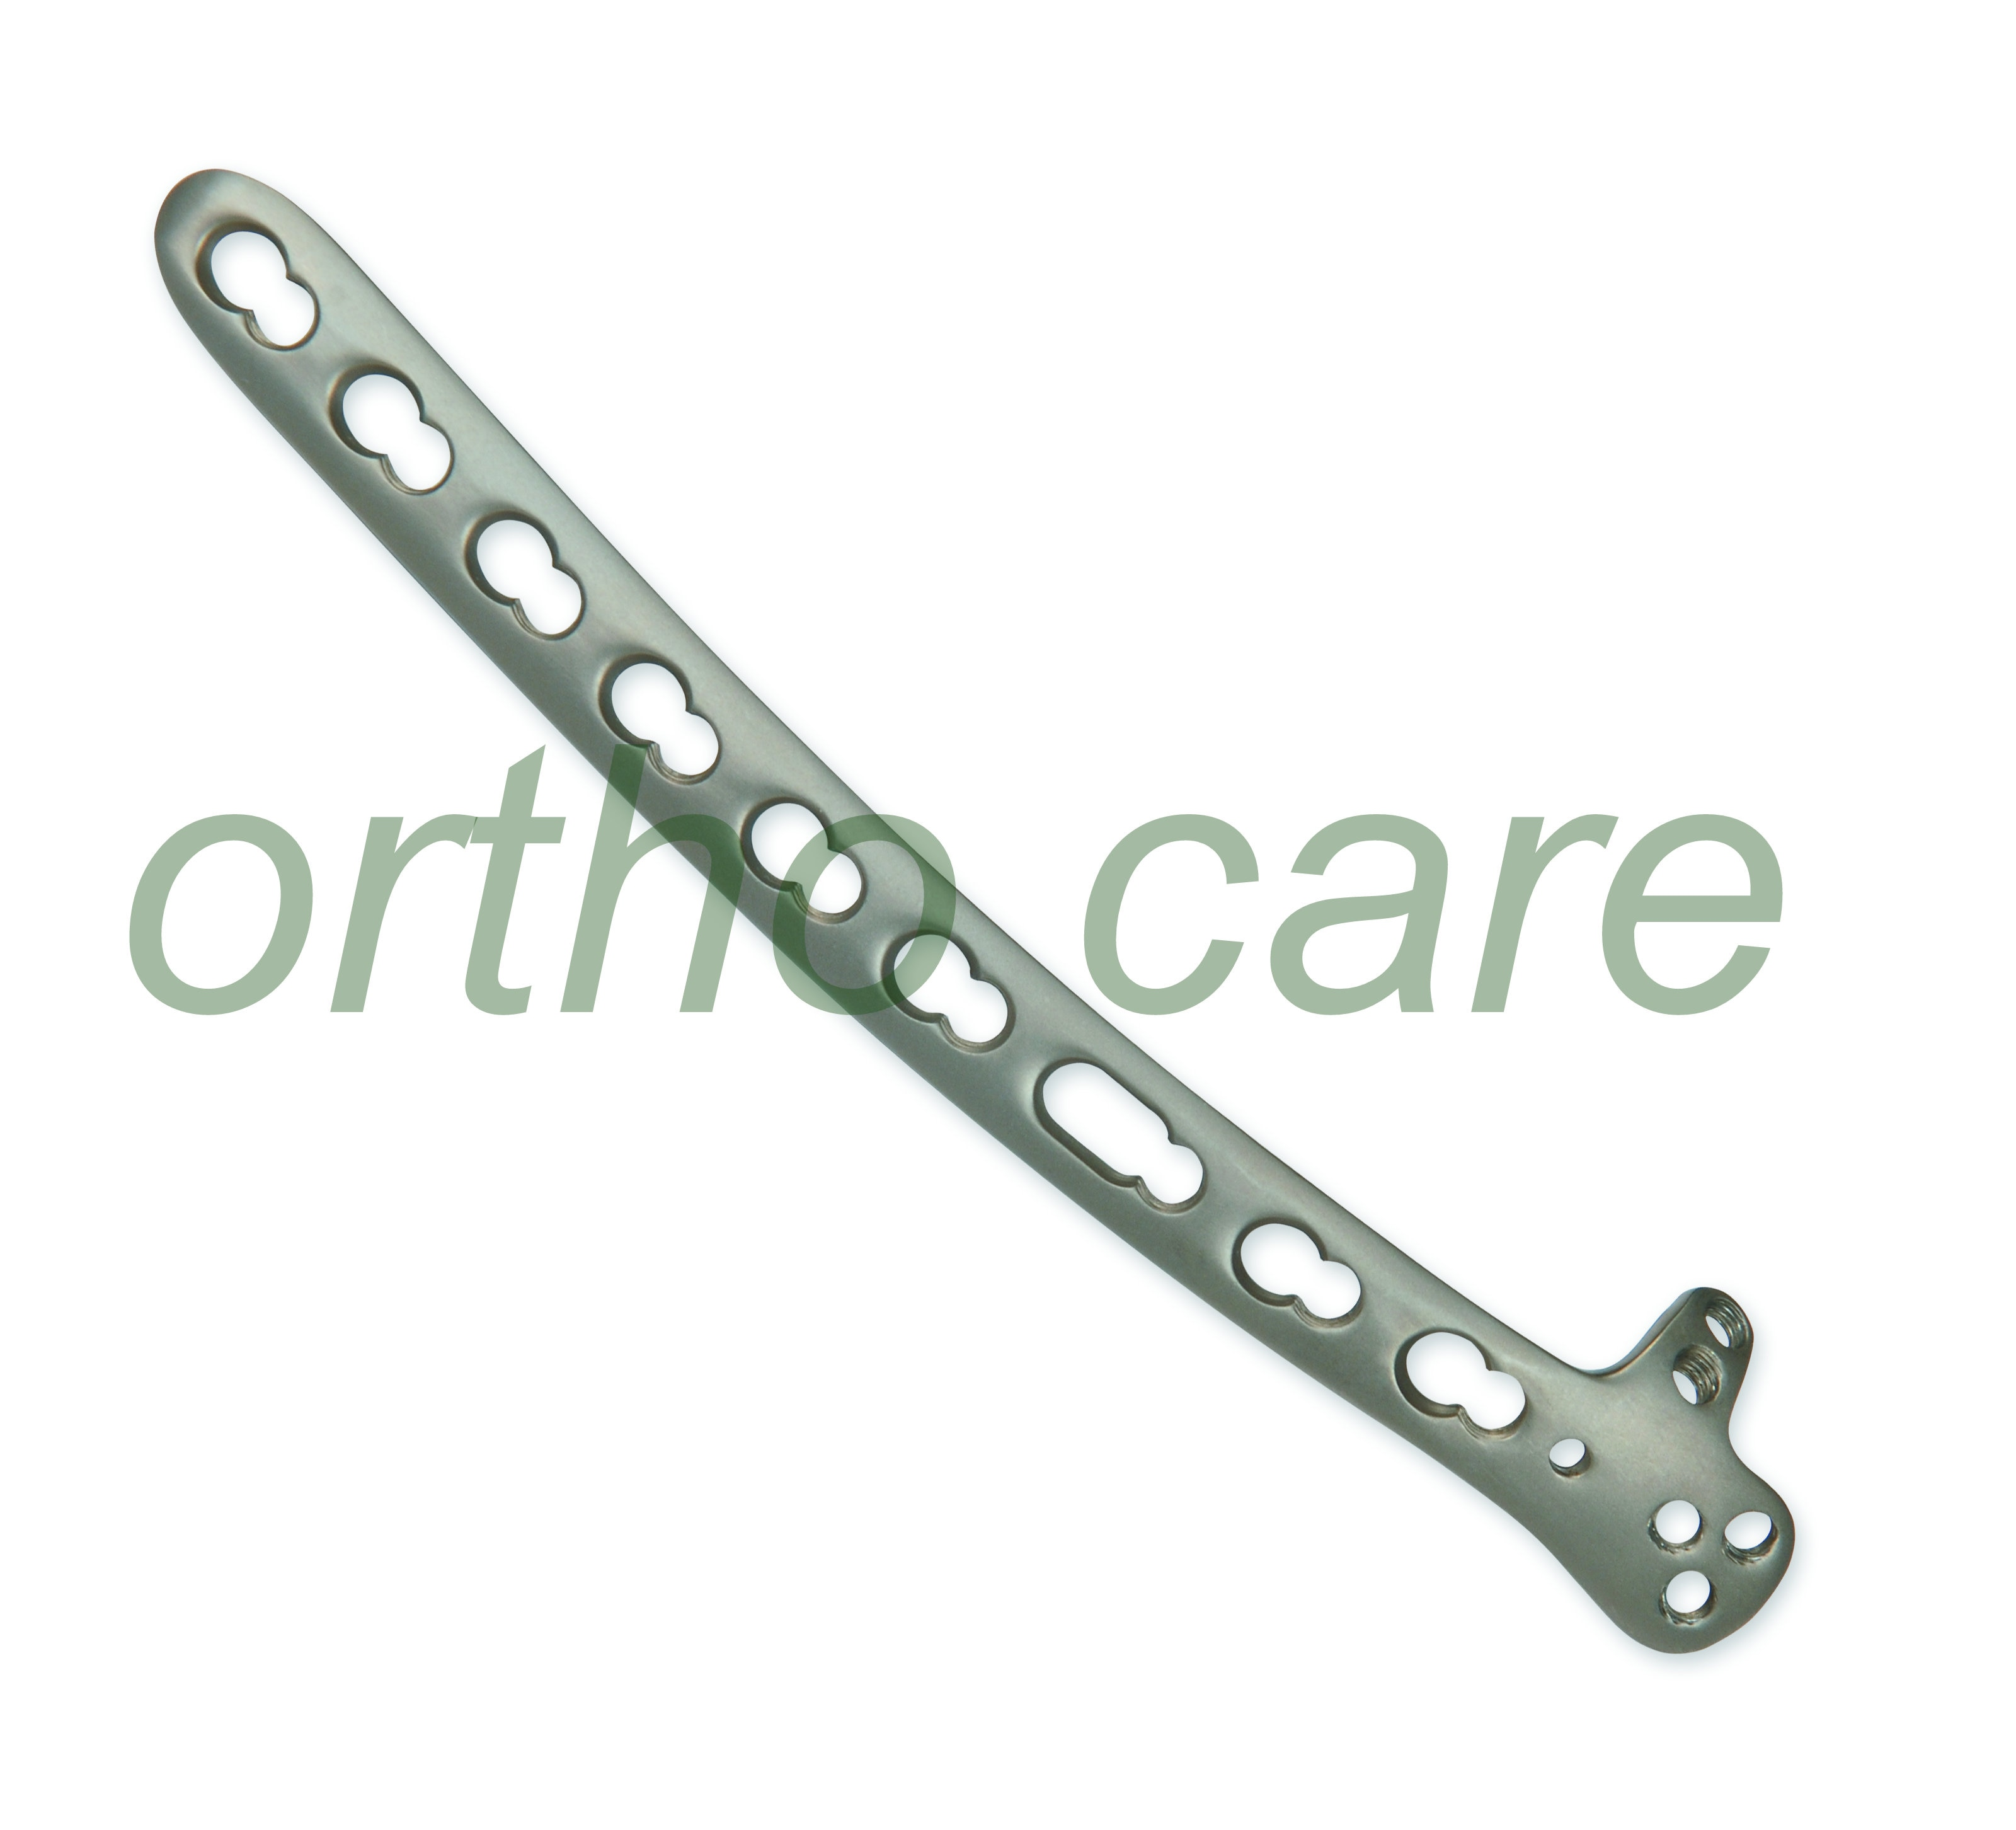 FROM WHEELS TO HEELS .  CARE LOCKING PLATES  WE ARE LEADING MANUFACTURERS AND EXPORTERS OF ORTHOPEDIC / ORTHOPAEDIC IMPLANTS AND INSTRUMENTS IN DELHI , INDIA .   Locking Plate Humeral Distal dorsal 2.7 3.5 with support . EMAIL : parth@orthocare.in  WEBSITE : www.orthocare.in www.orthoimplants.com